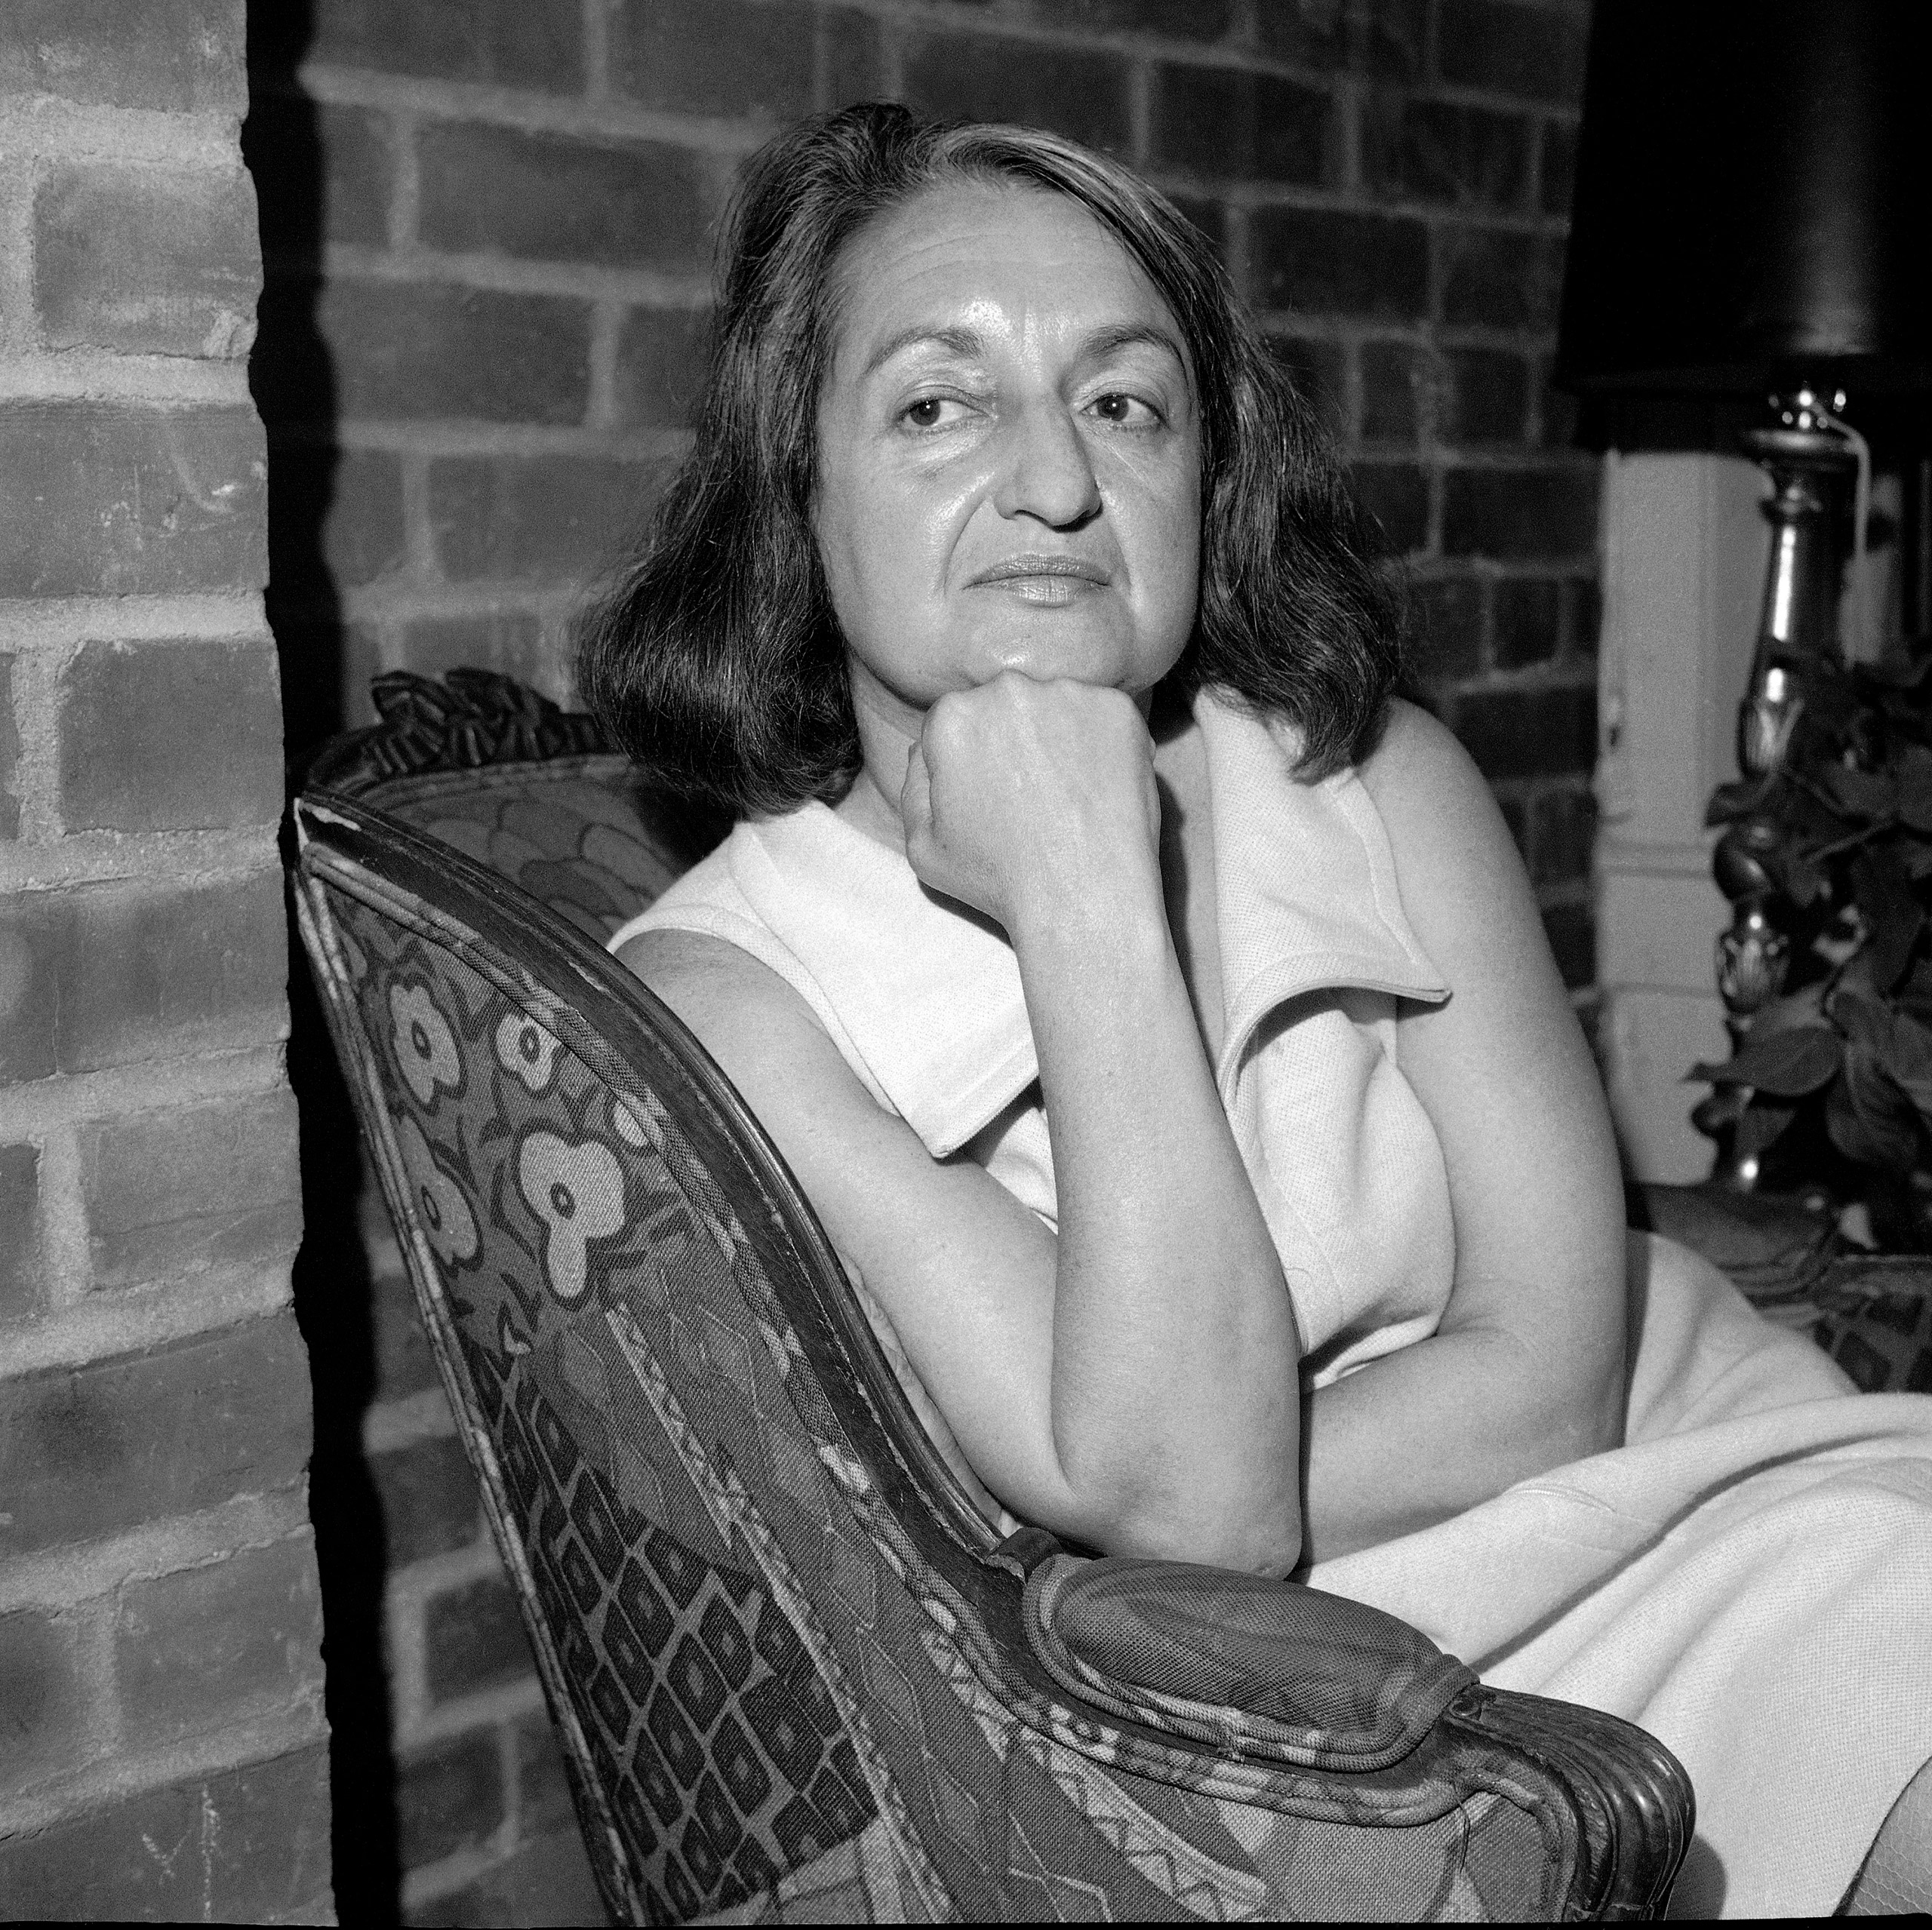 Betty Friedan at a press interview on May 25, 1970. Friedan is a feminist, activist, writer, best known for her 1963 book,  The Feminine Mystique.